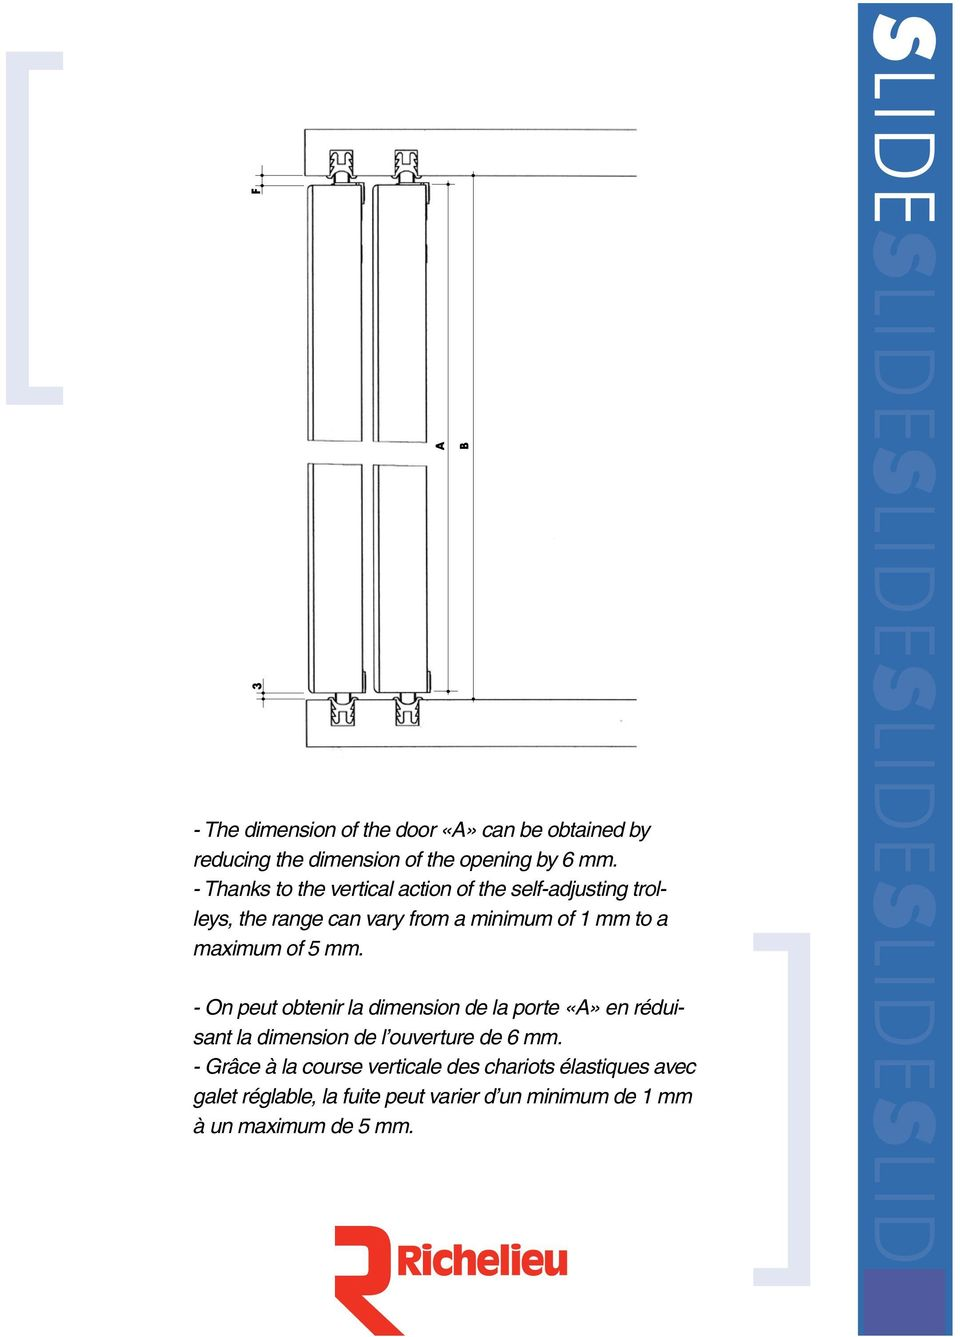 - The dimension of the door «A» can be obtained by reducing the dimension of the opening by 6 mm.